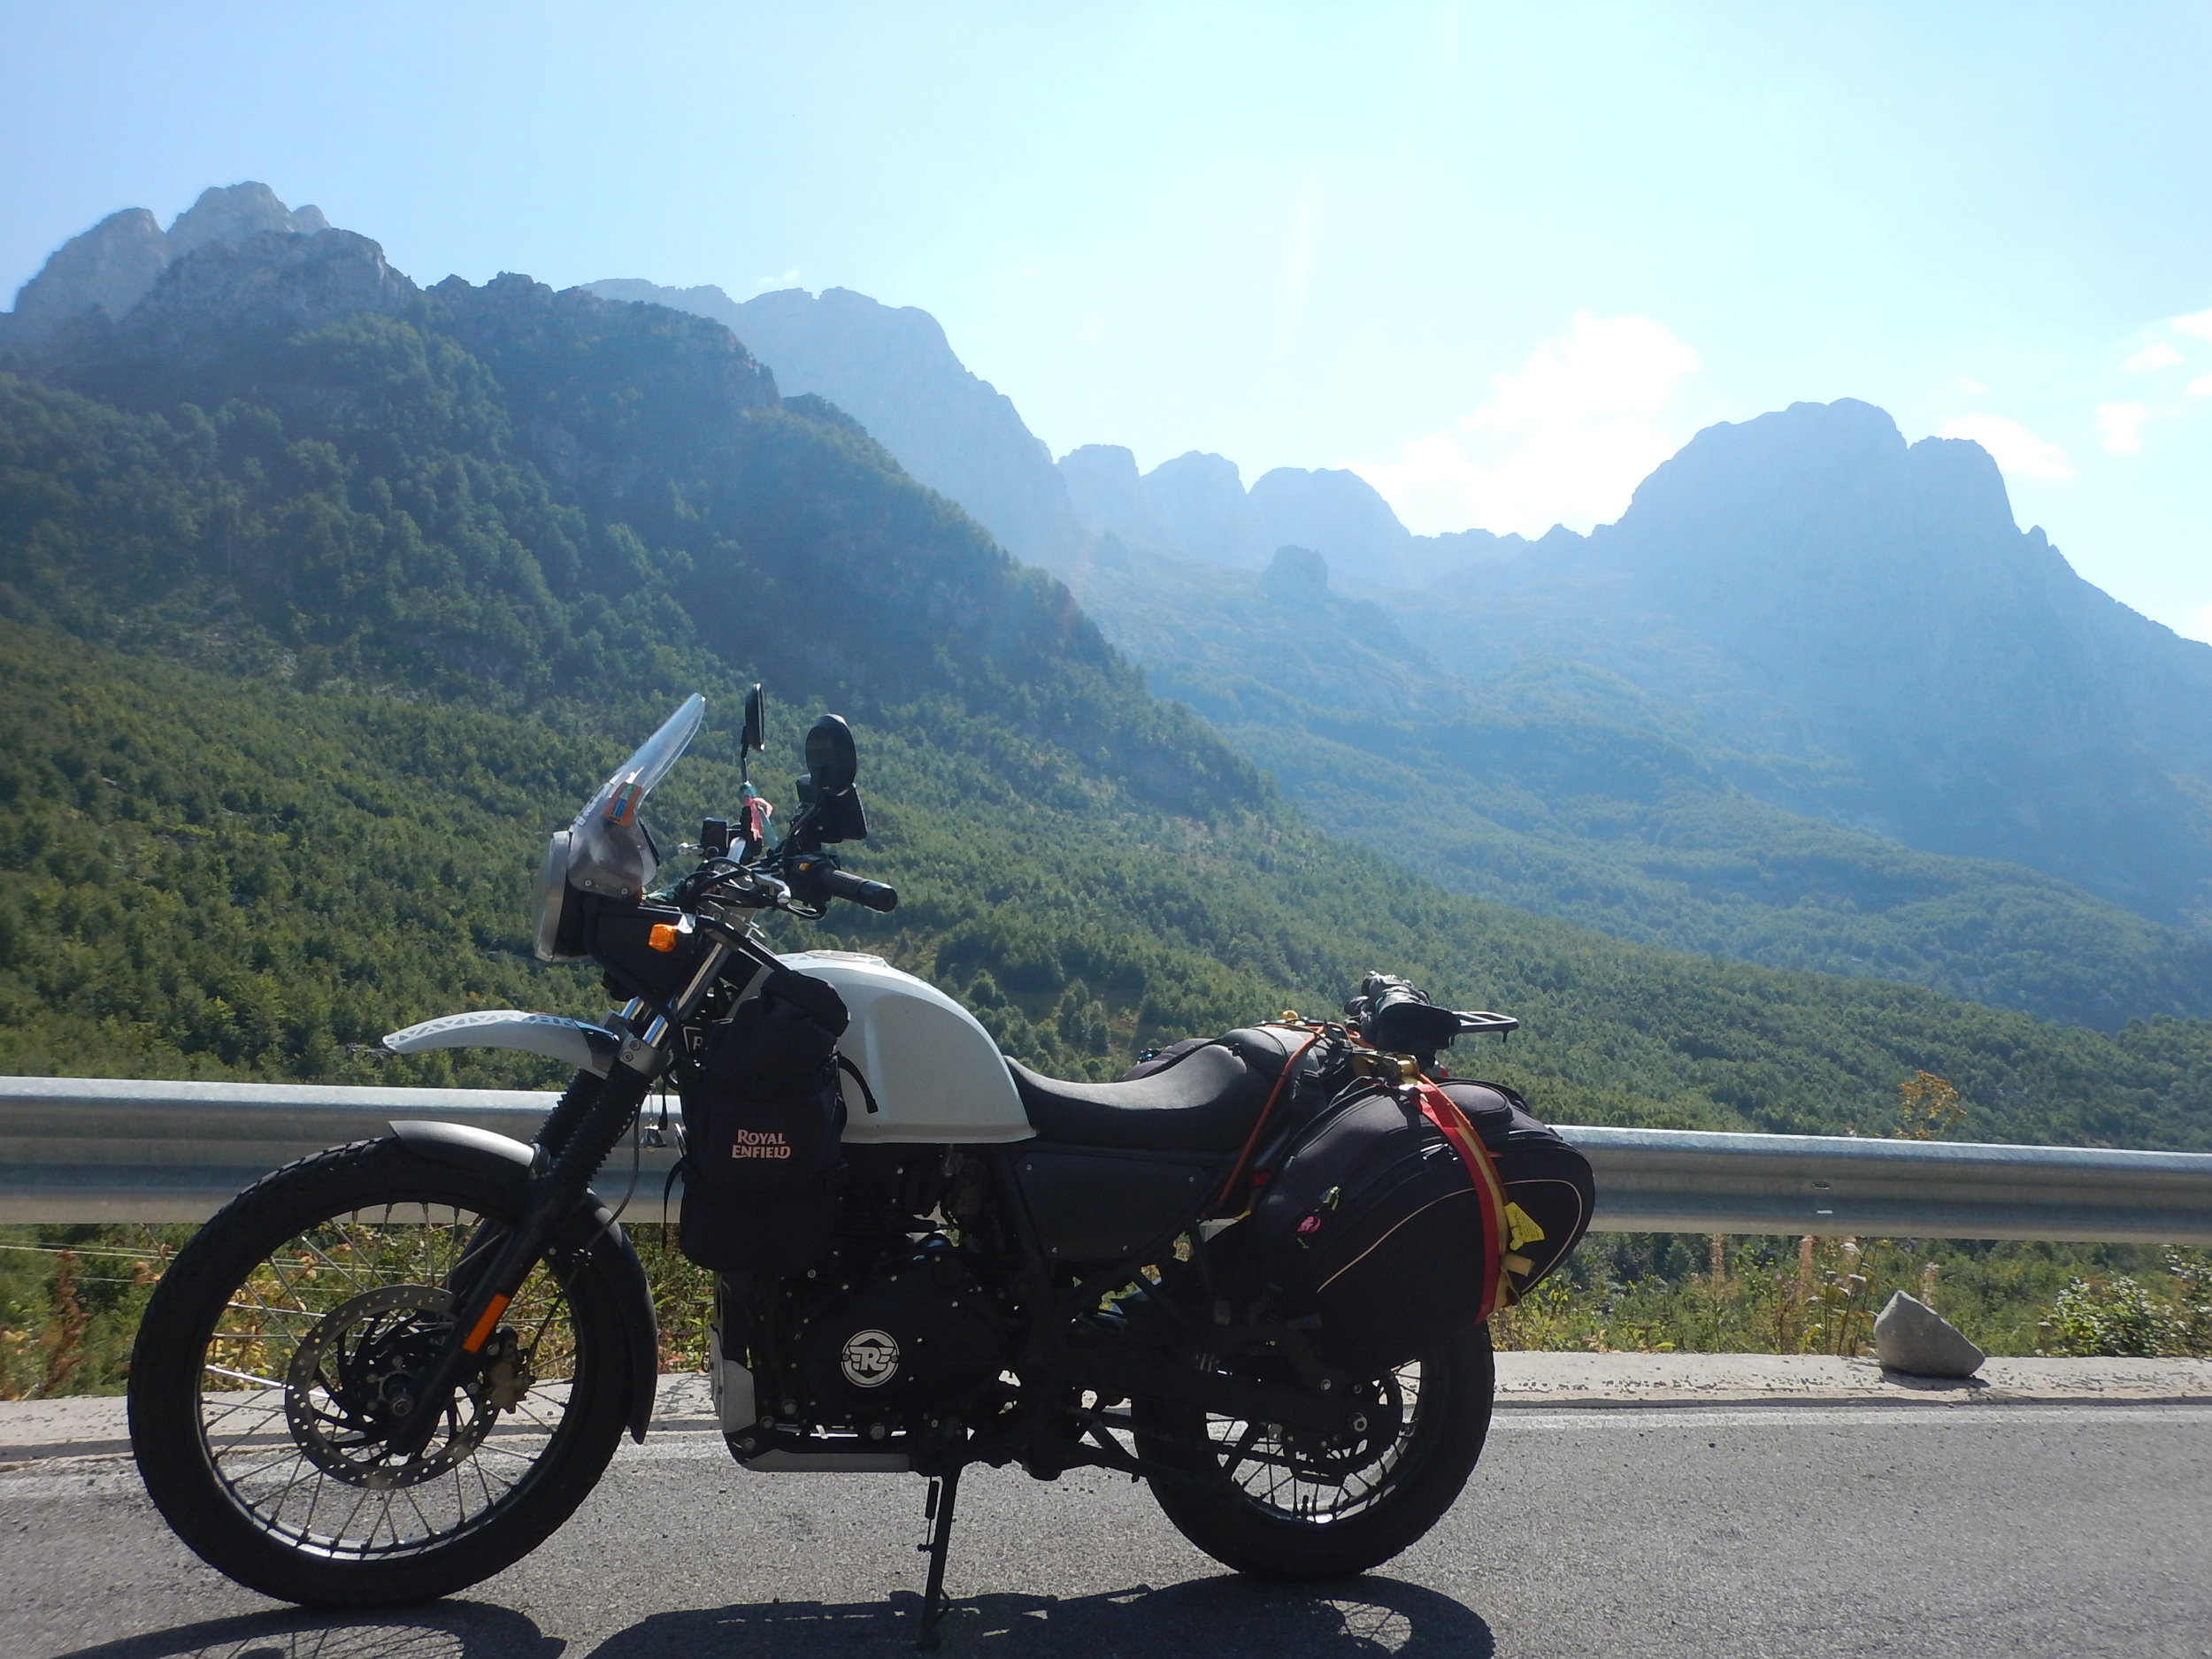 Motorcycling in the mountains! Hehe. You didn't expect that, did you??